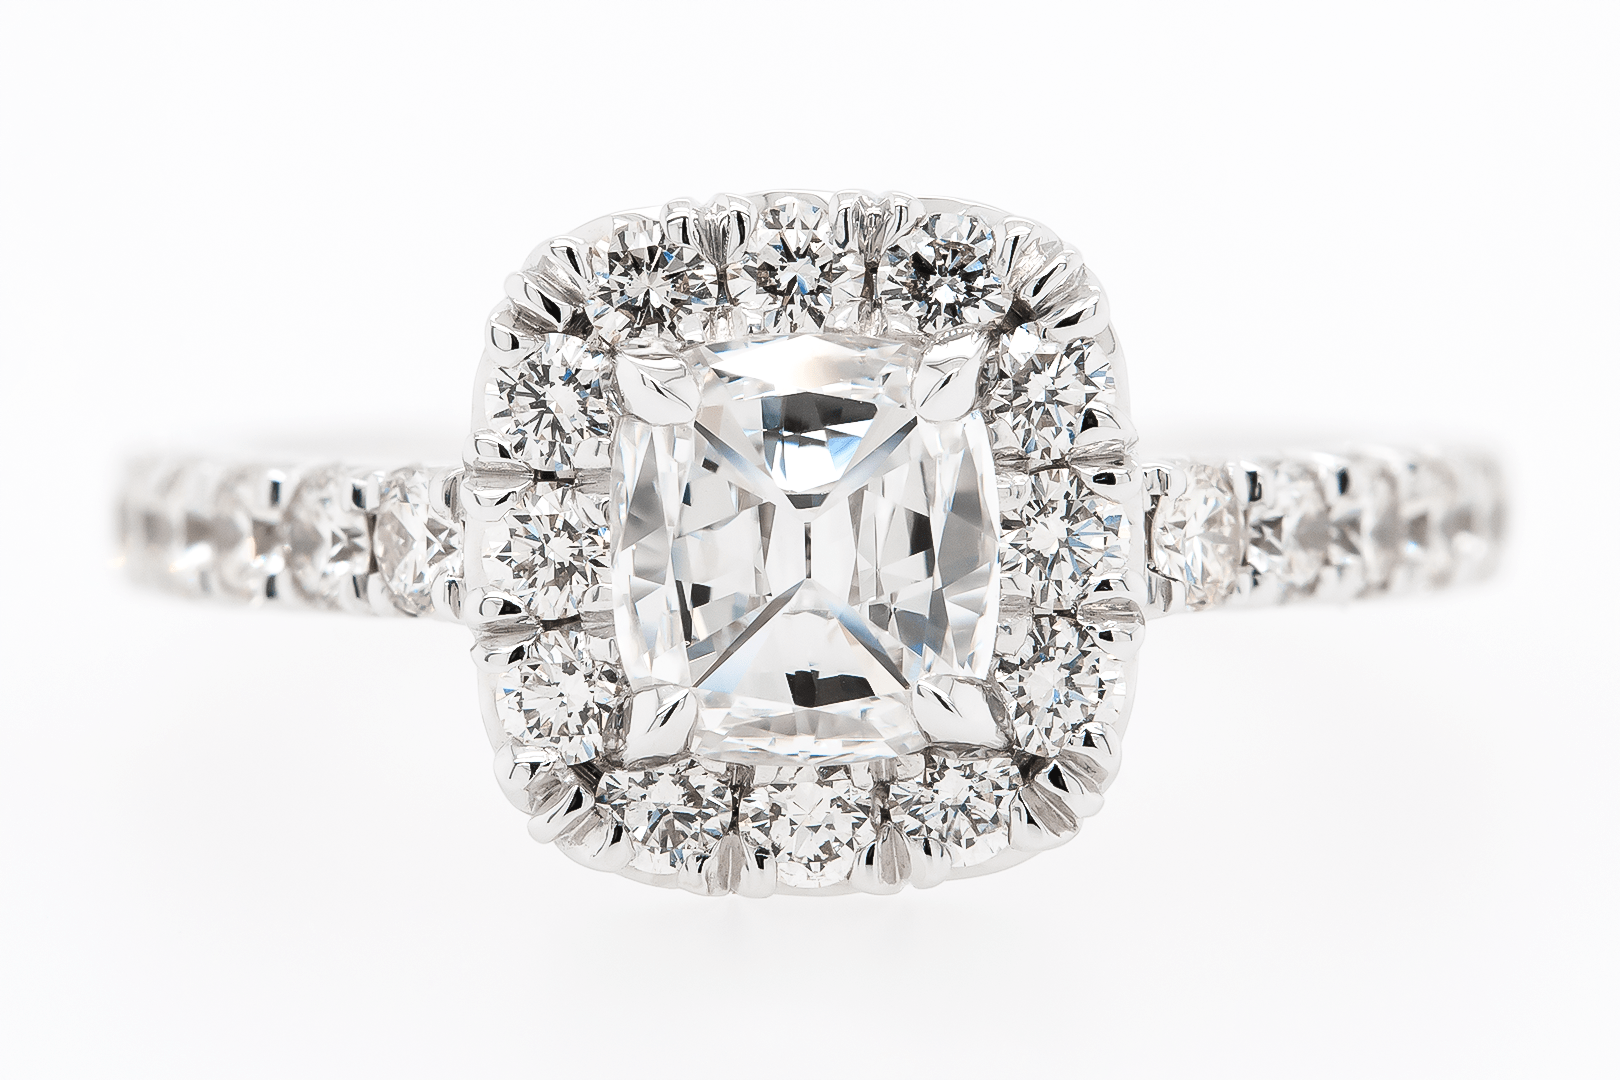 White Gold Halo Engagement Ring with diamonds on the band